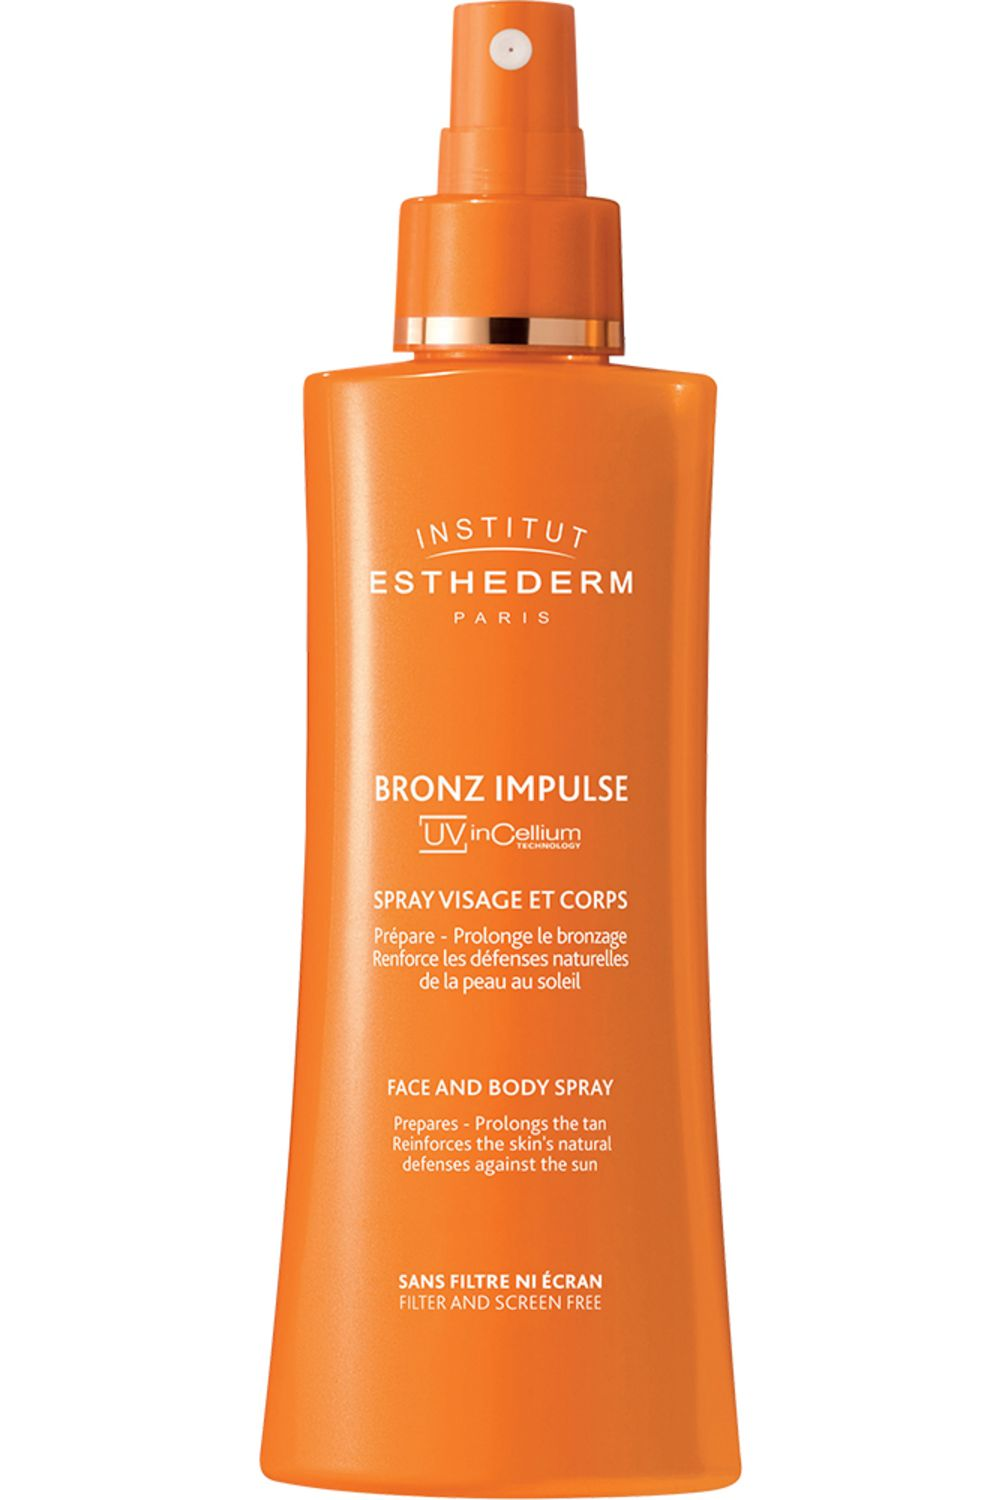 Blissim : Institut Esthederm - Brume visage et corps Bronz Spray Impulse UV InCellium - Bronz Spray Impulse UV InCellium 150mL